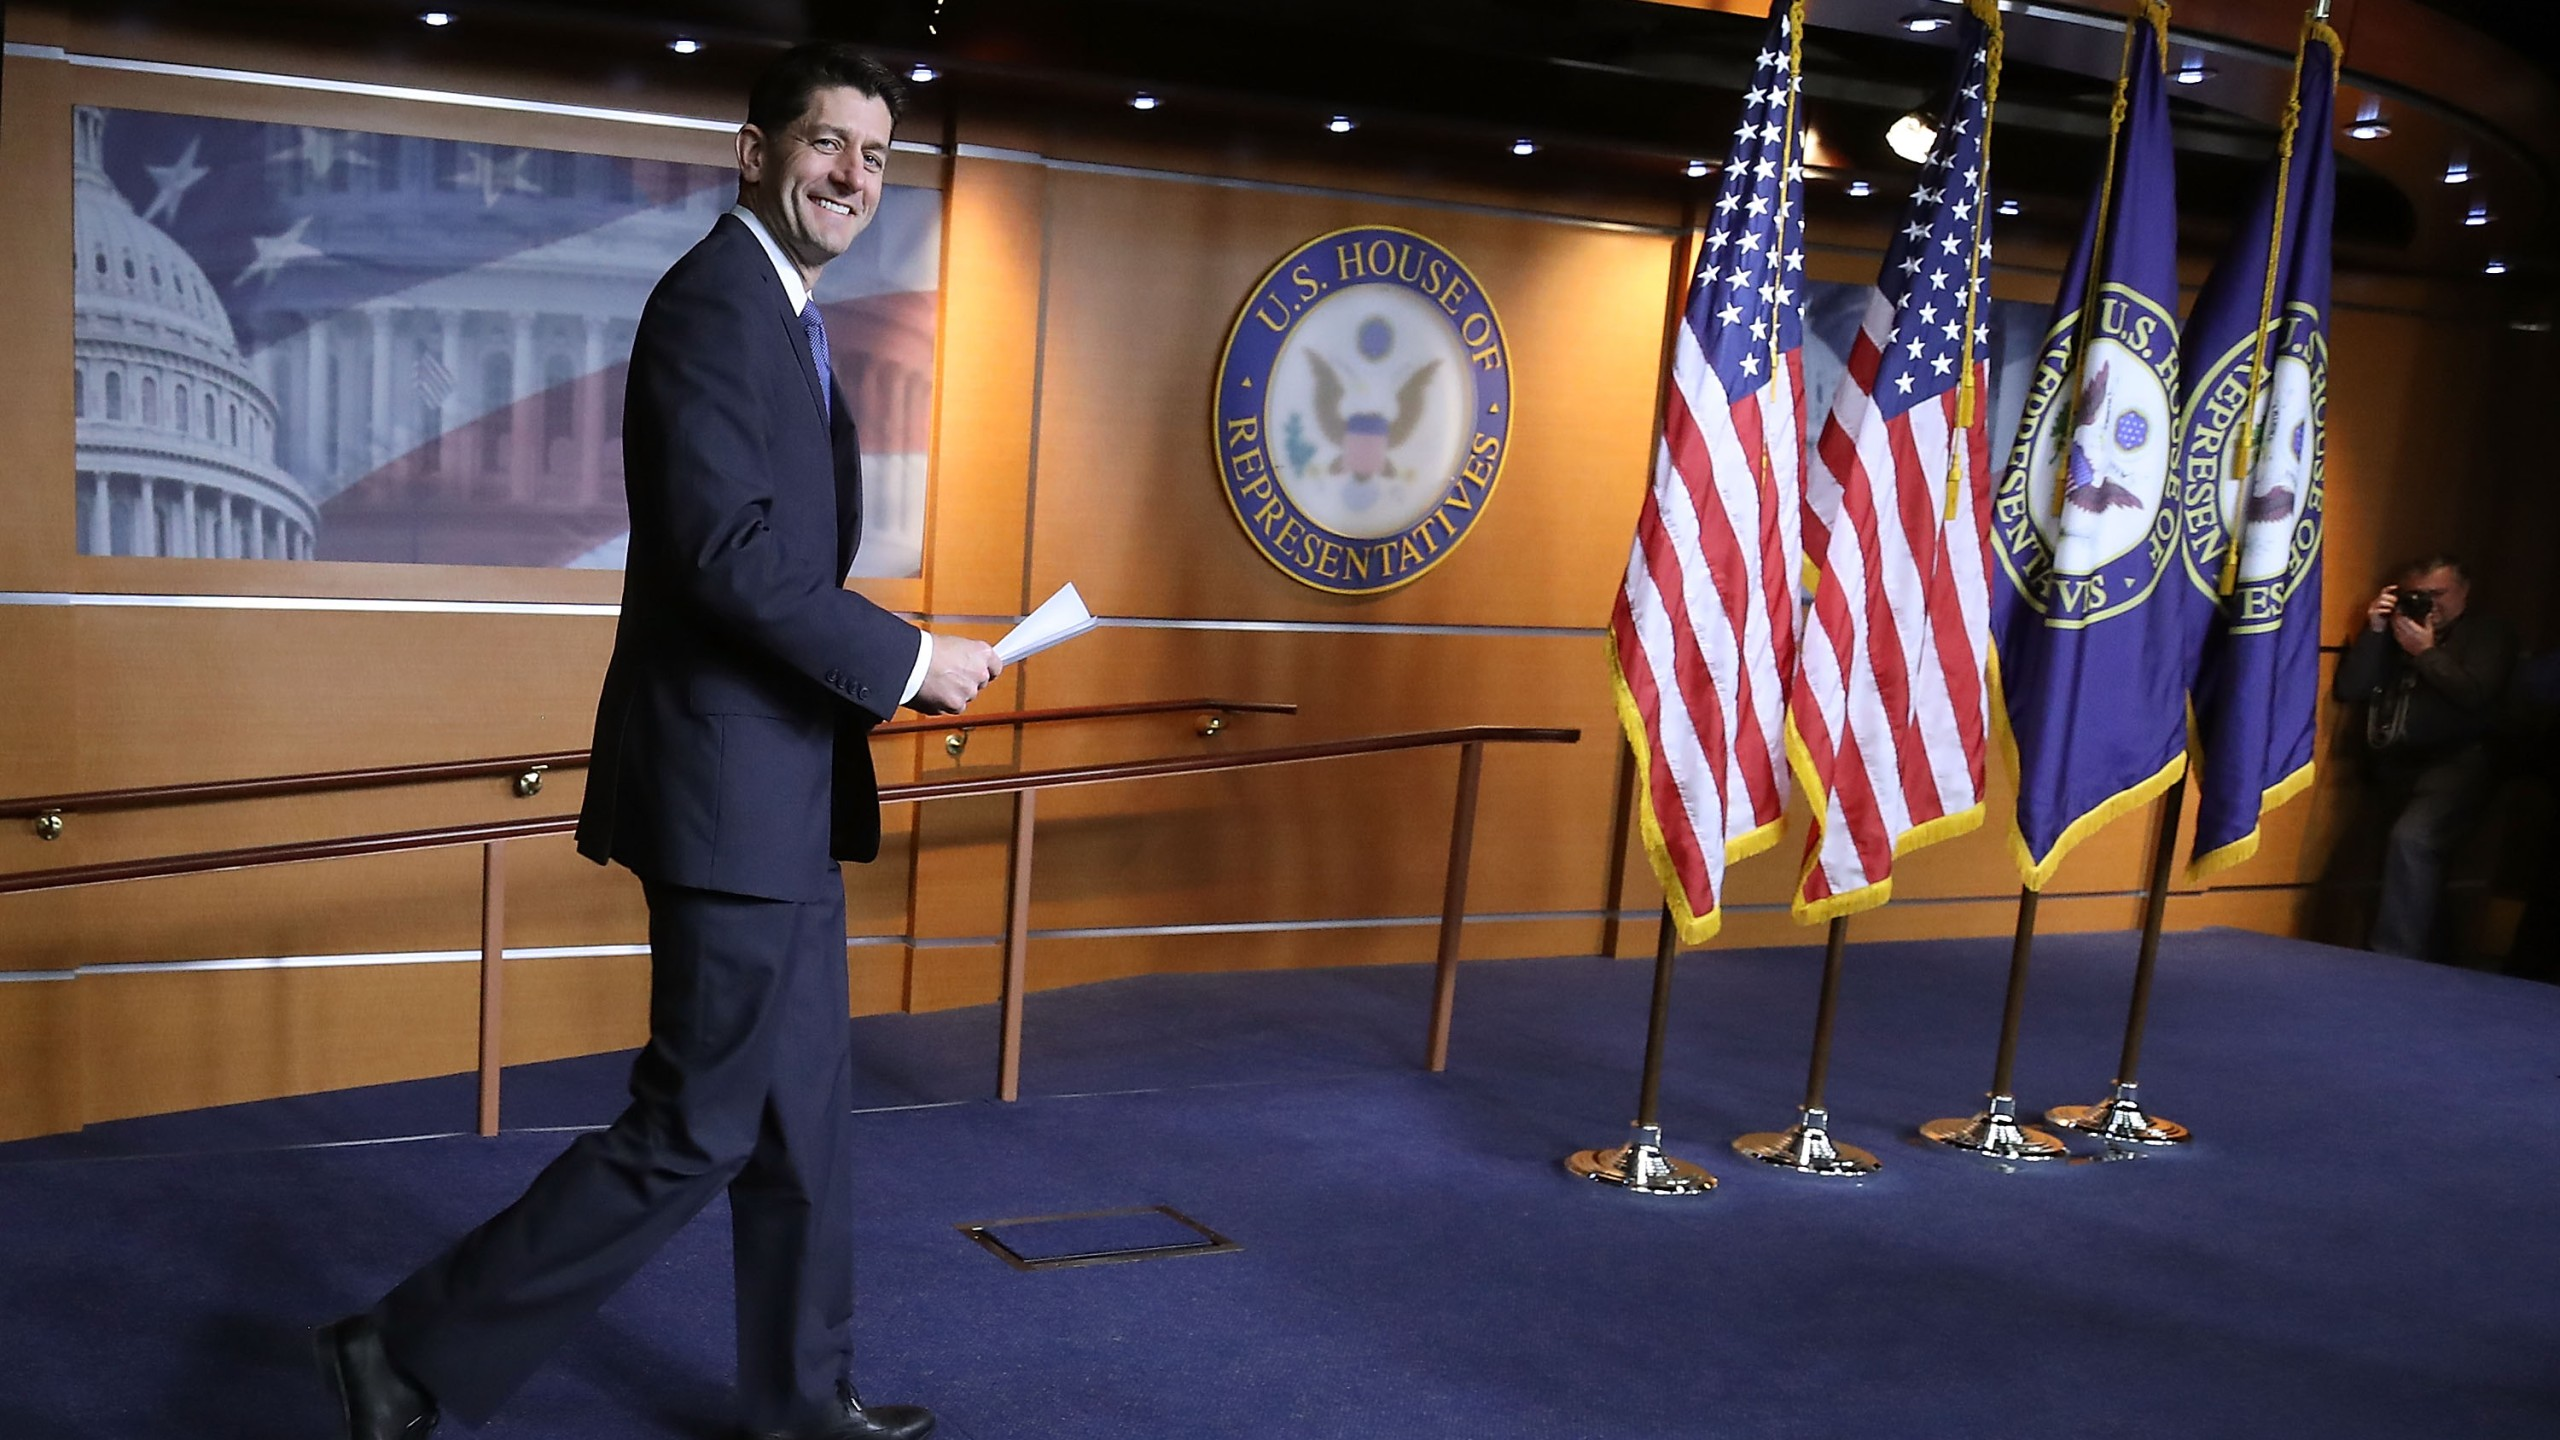 House Speaker Paul Ryan arrives to speak about the Republican tax reform legislation currently before Congress, during his weekly briefing on Capitol Hill Dec. 14, 2017. (Credit: Mark Wilson/Getty Images)